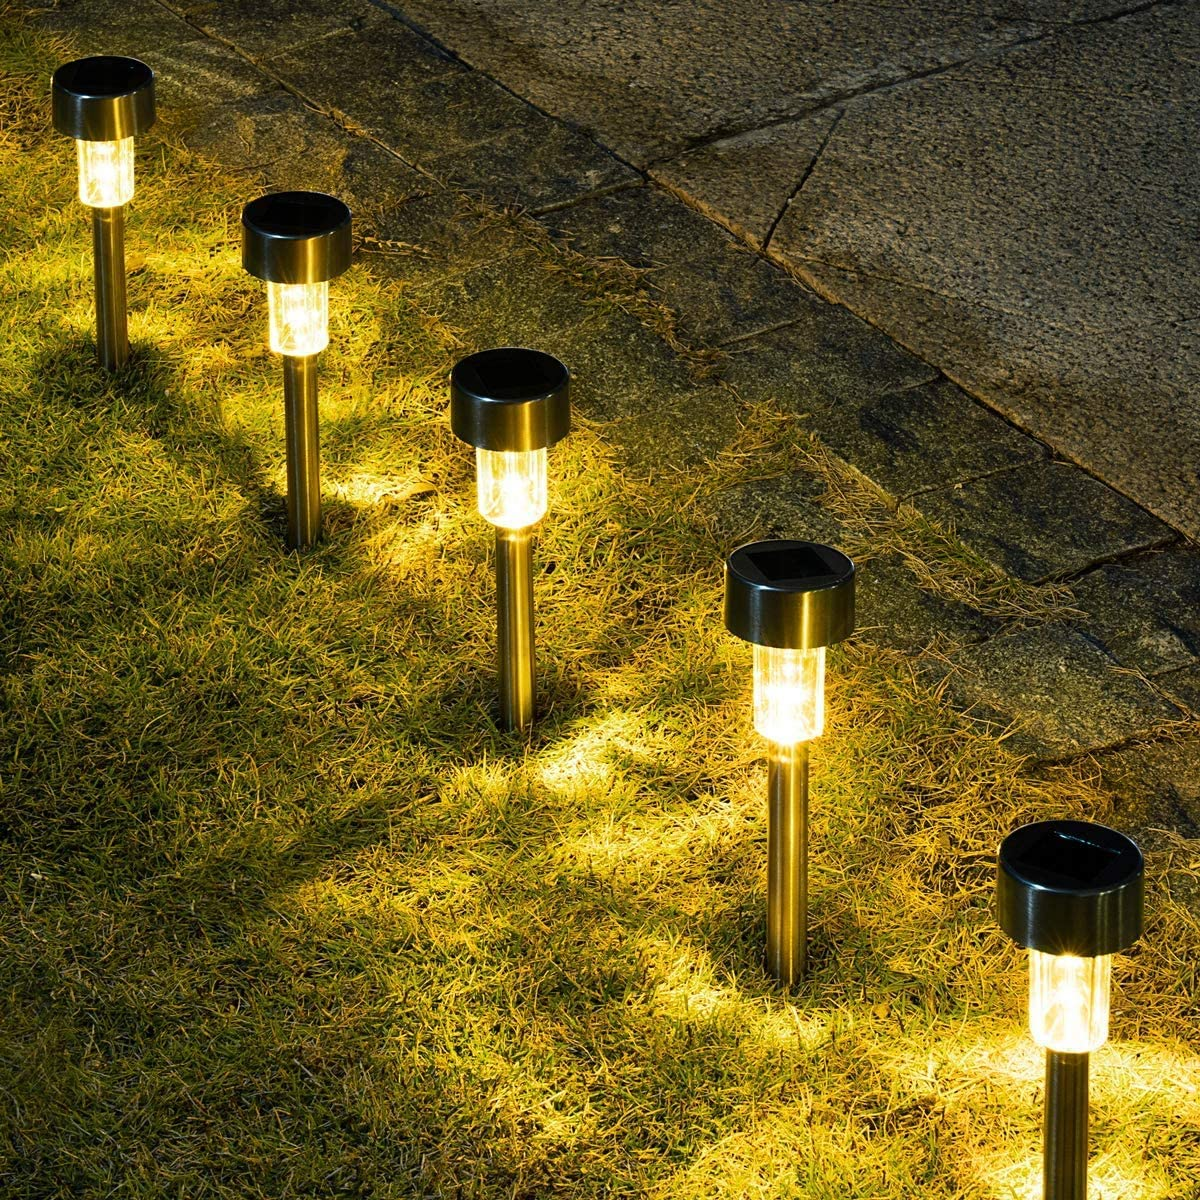 GIGALUMI 16 Pack Solar Path Lights Outdoor,Solar Lights Outdoor Garden Led Light Landscape/Pathway Lights for Patio/Lawn/Yard/Driveway/Walkway (Stainless Steel,Warm White)